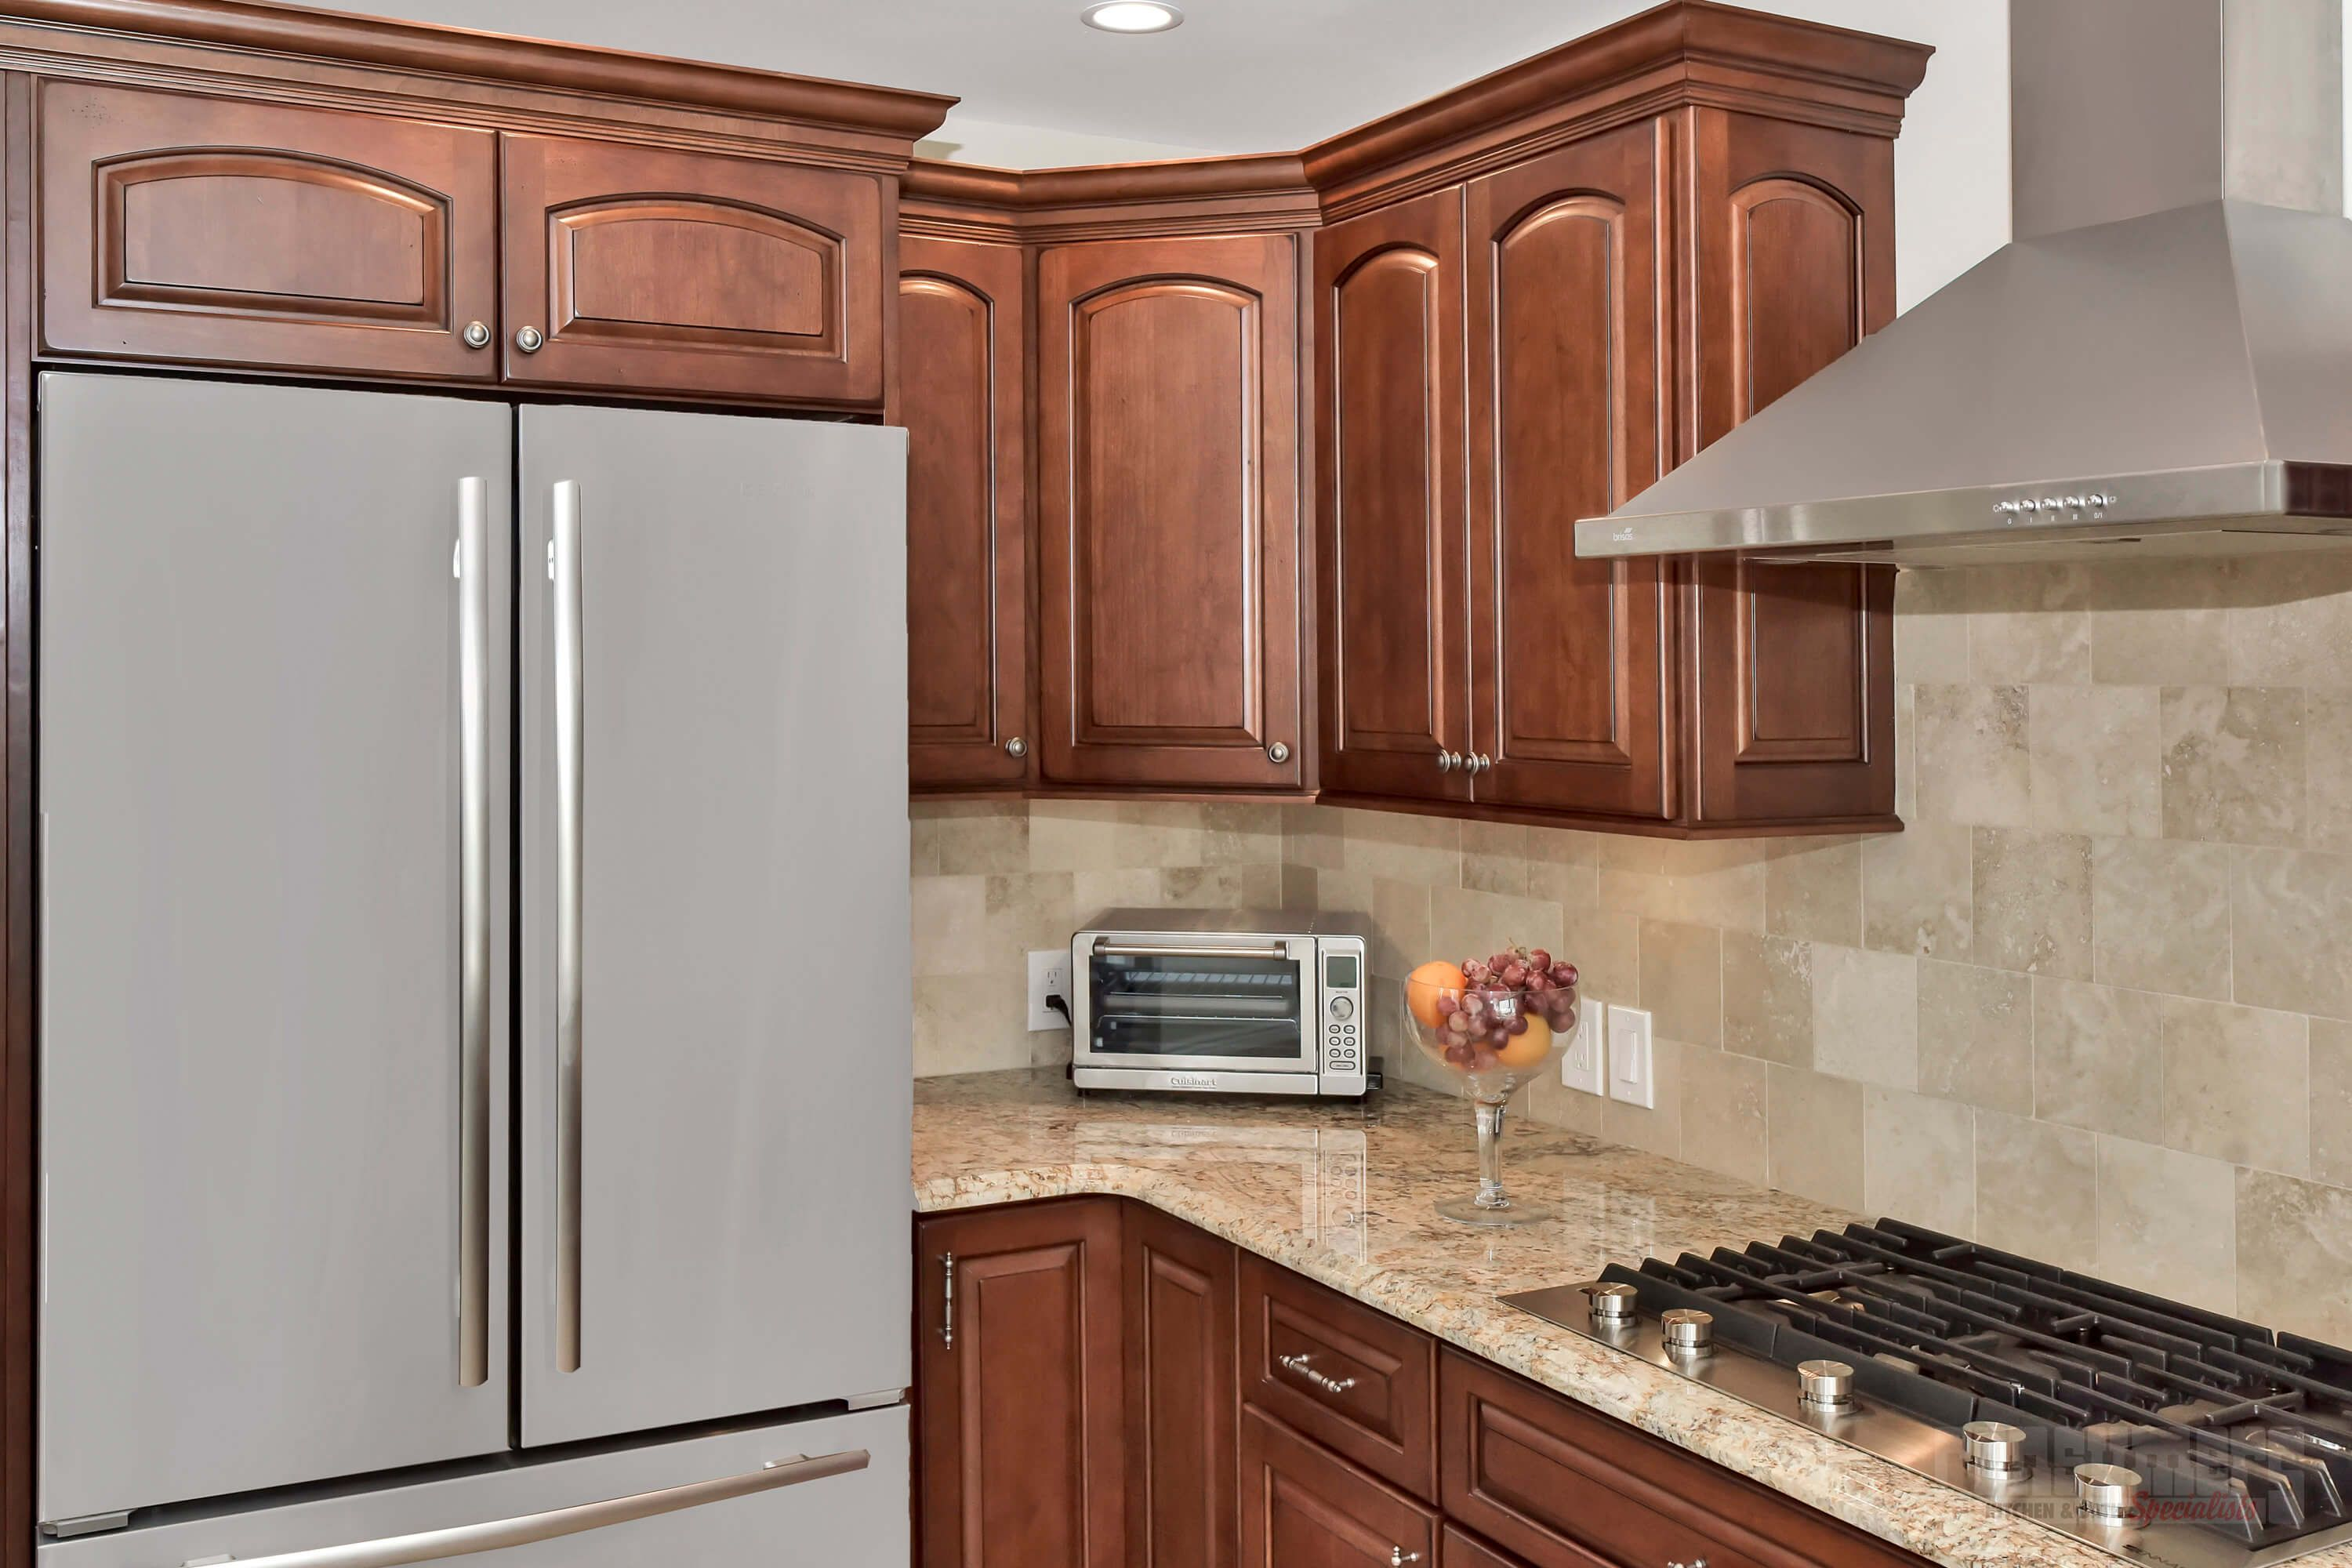 Pin by Consumers Kitchens & Baths on Massapequa Gold ...